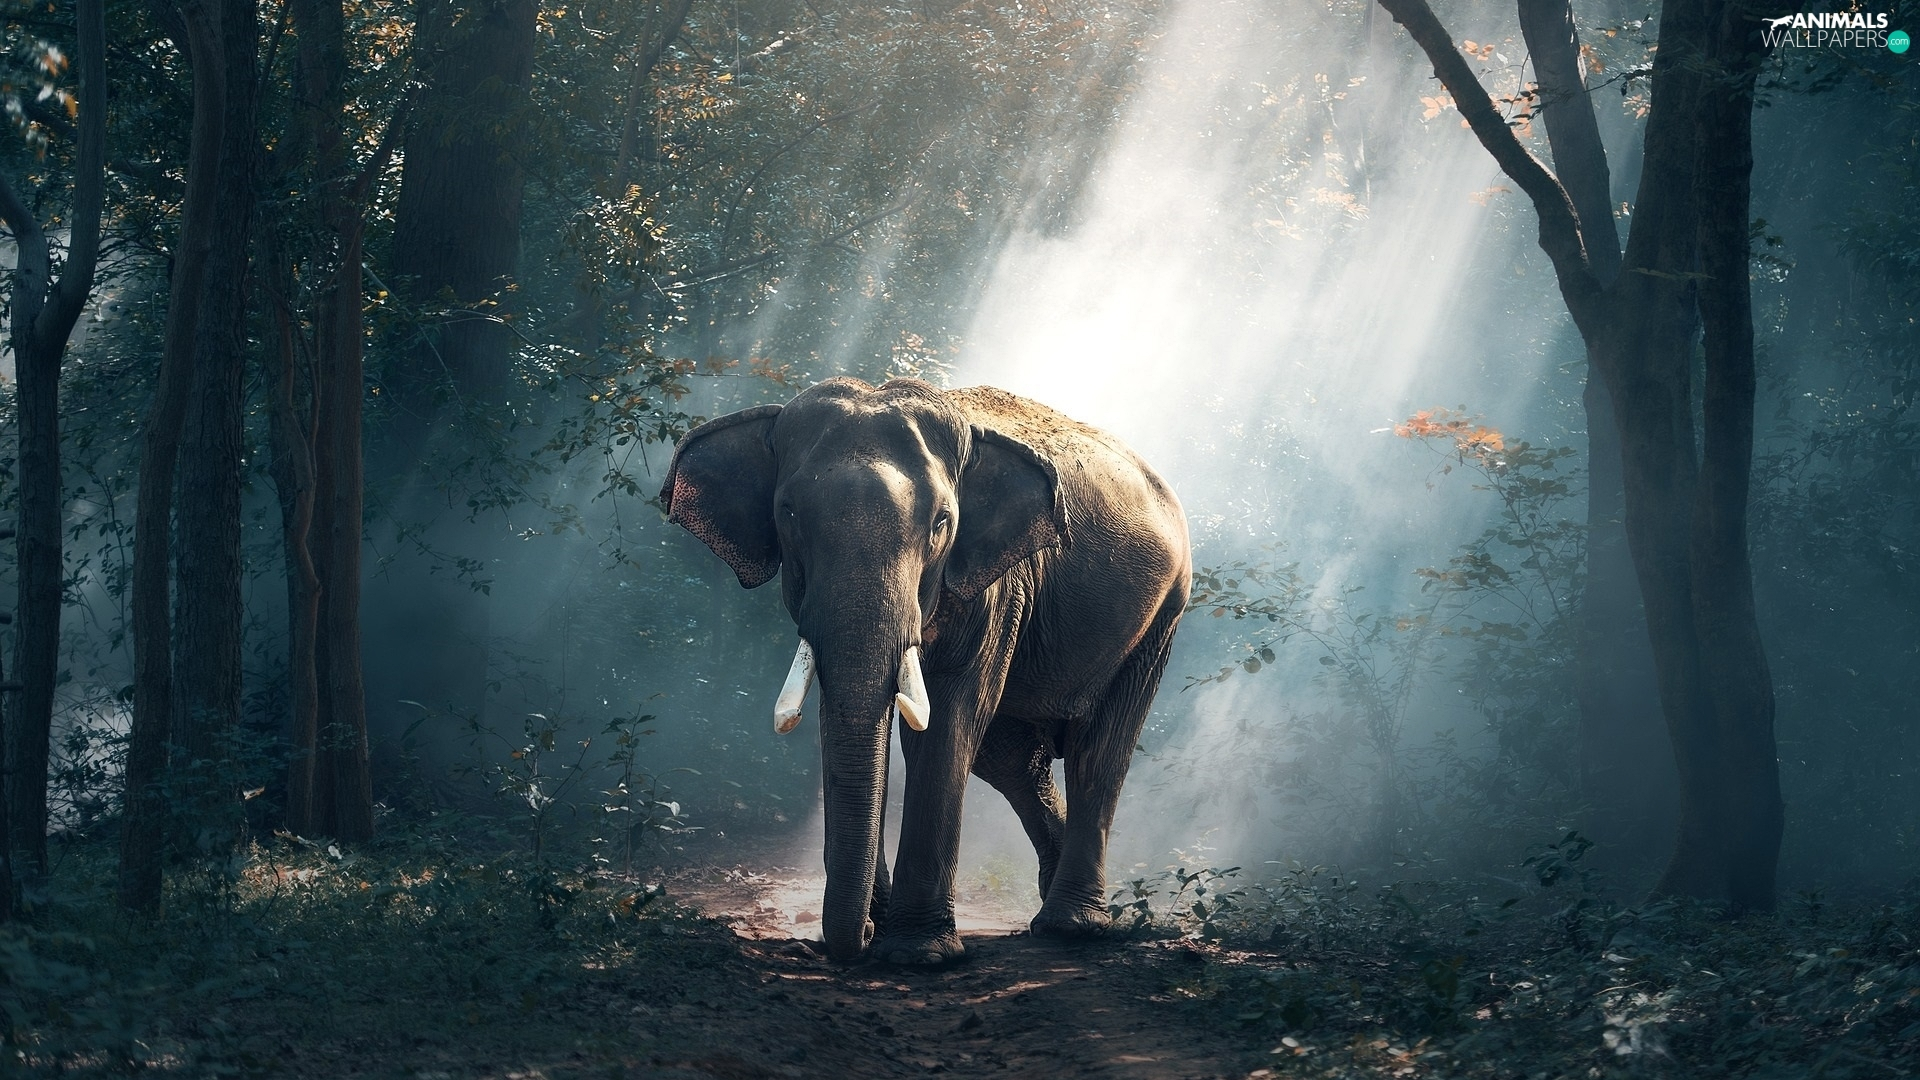 viewes, light breaking through sky, forest, trees, Elephant